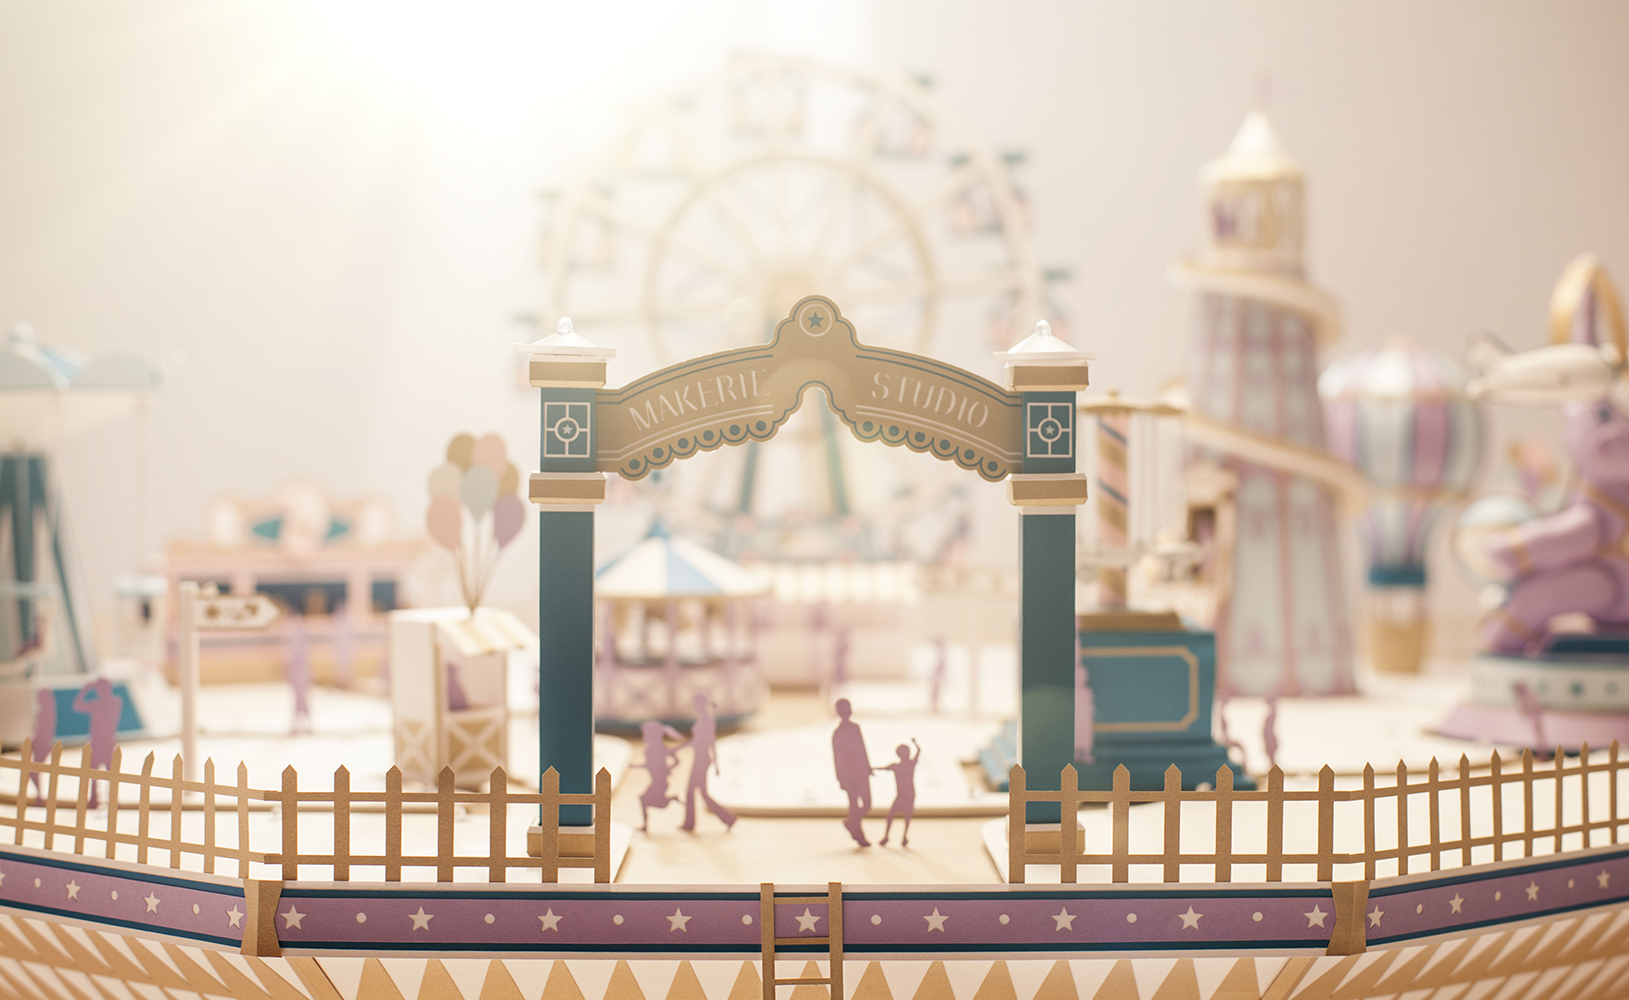 makerie-studio-fantastical-fairground-enter